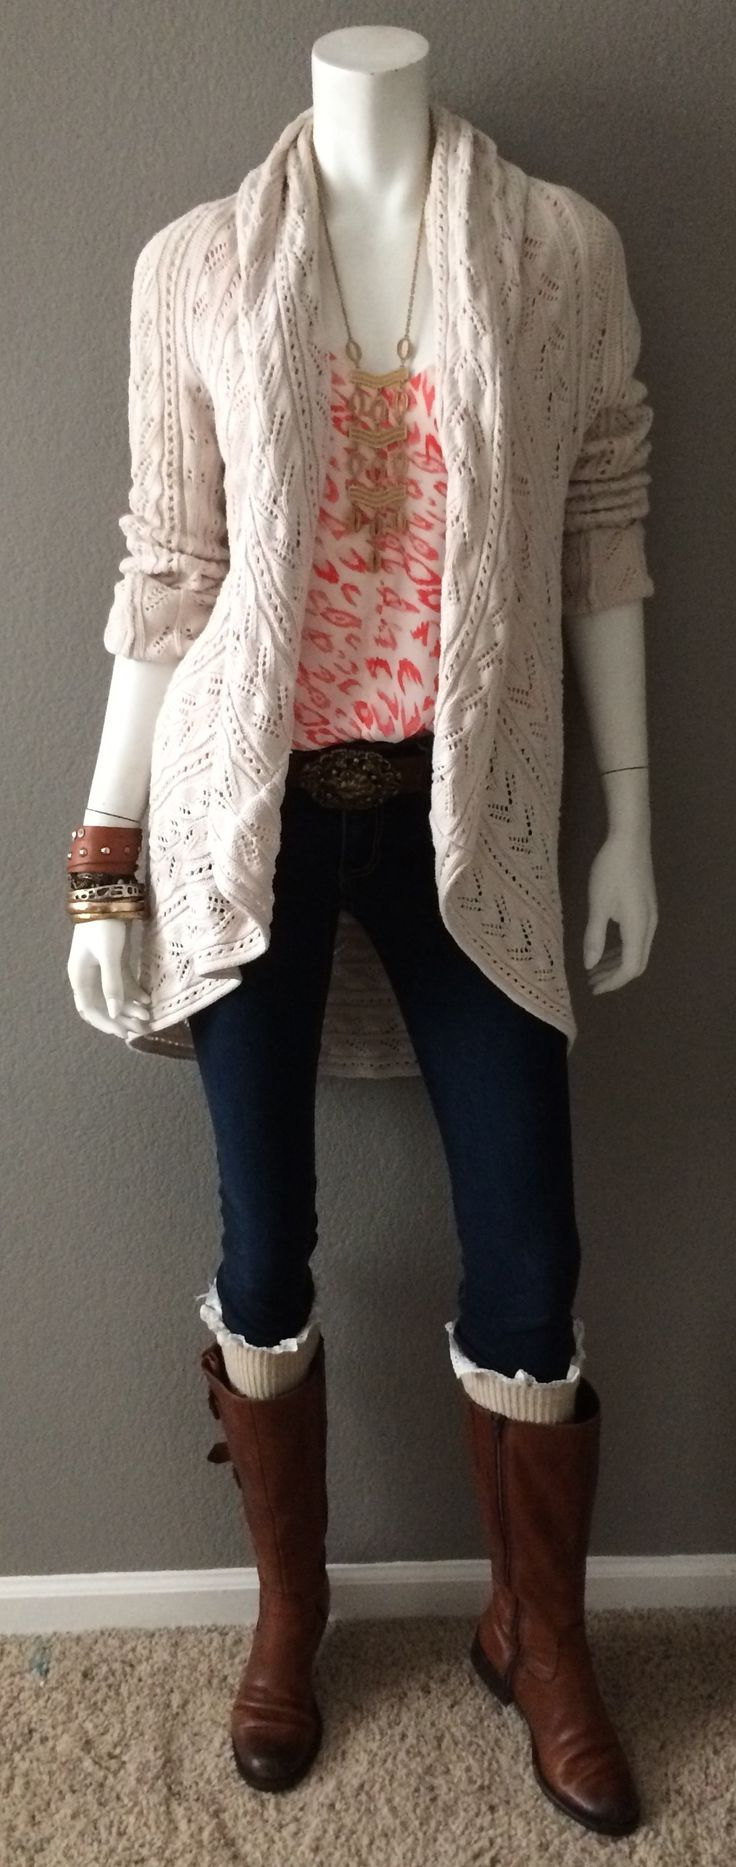 Daily Look: CAbi Spring '15 Flirt Cami with vintage Bree Jean, Circle Sweater and Rococco Belt with boot socks, riding boots, tons of bracelets, and my fave Stella & Dot necklace. Spring really can be layered up for winter and if you live in a colder climate, you can always add a cozy scarf and/or a long-sleeved layer underneath. #CAbiClothing